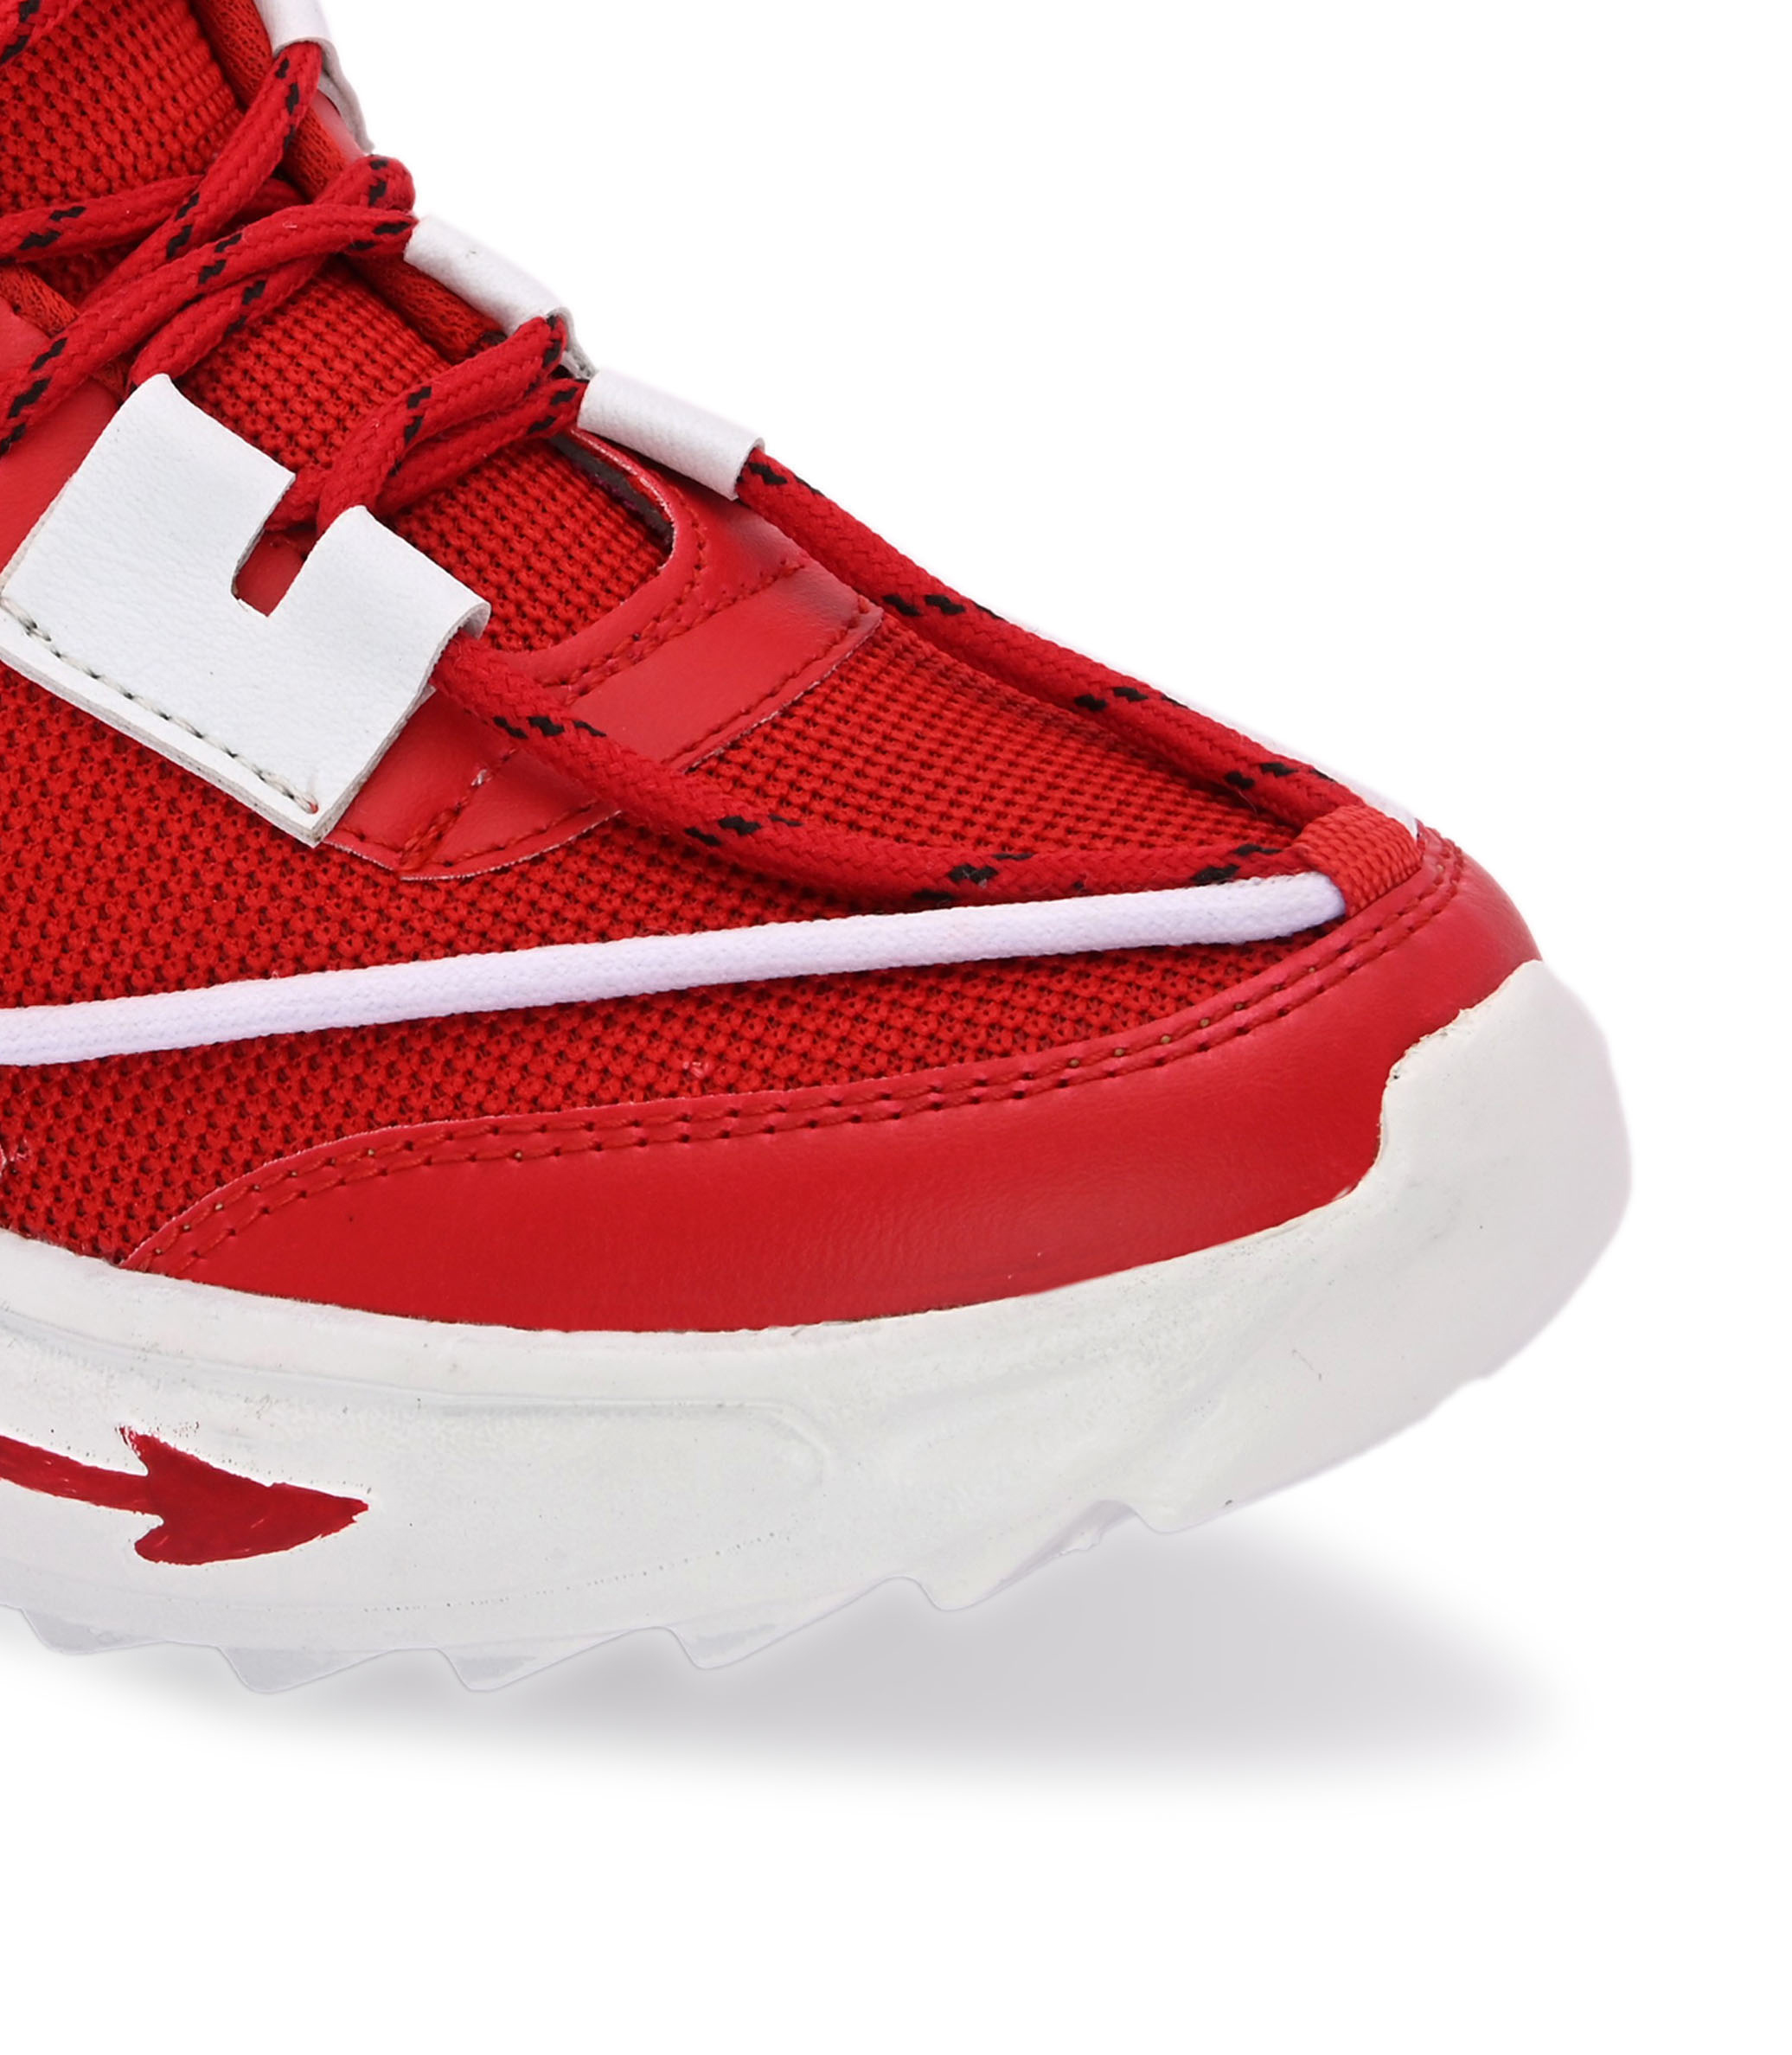 BRIFAR COMFORTABLE & TRENDY SPORTS SHOES ARE RELIABLE FOR ANY BFS0815RD1 (7-10, RED, 4 PAIR)